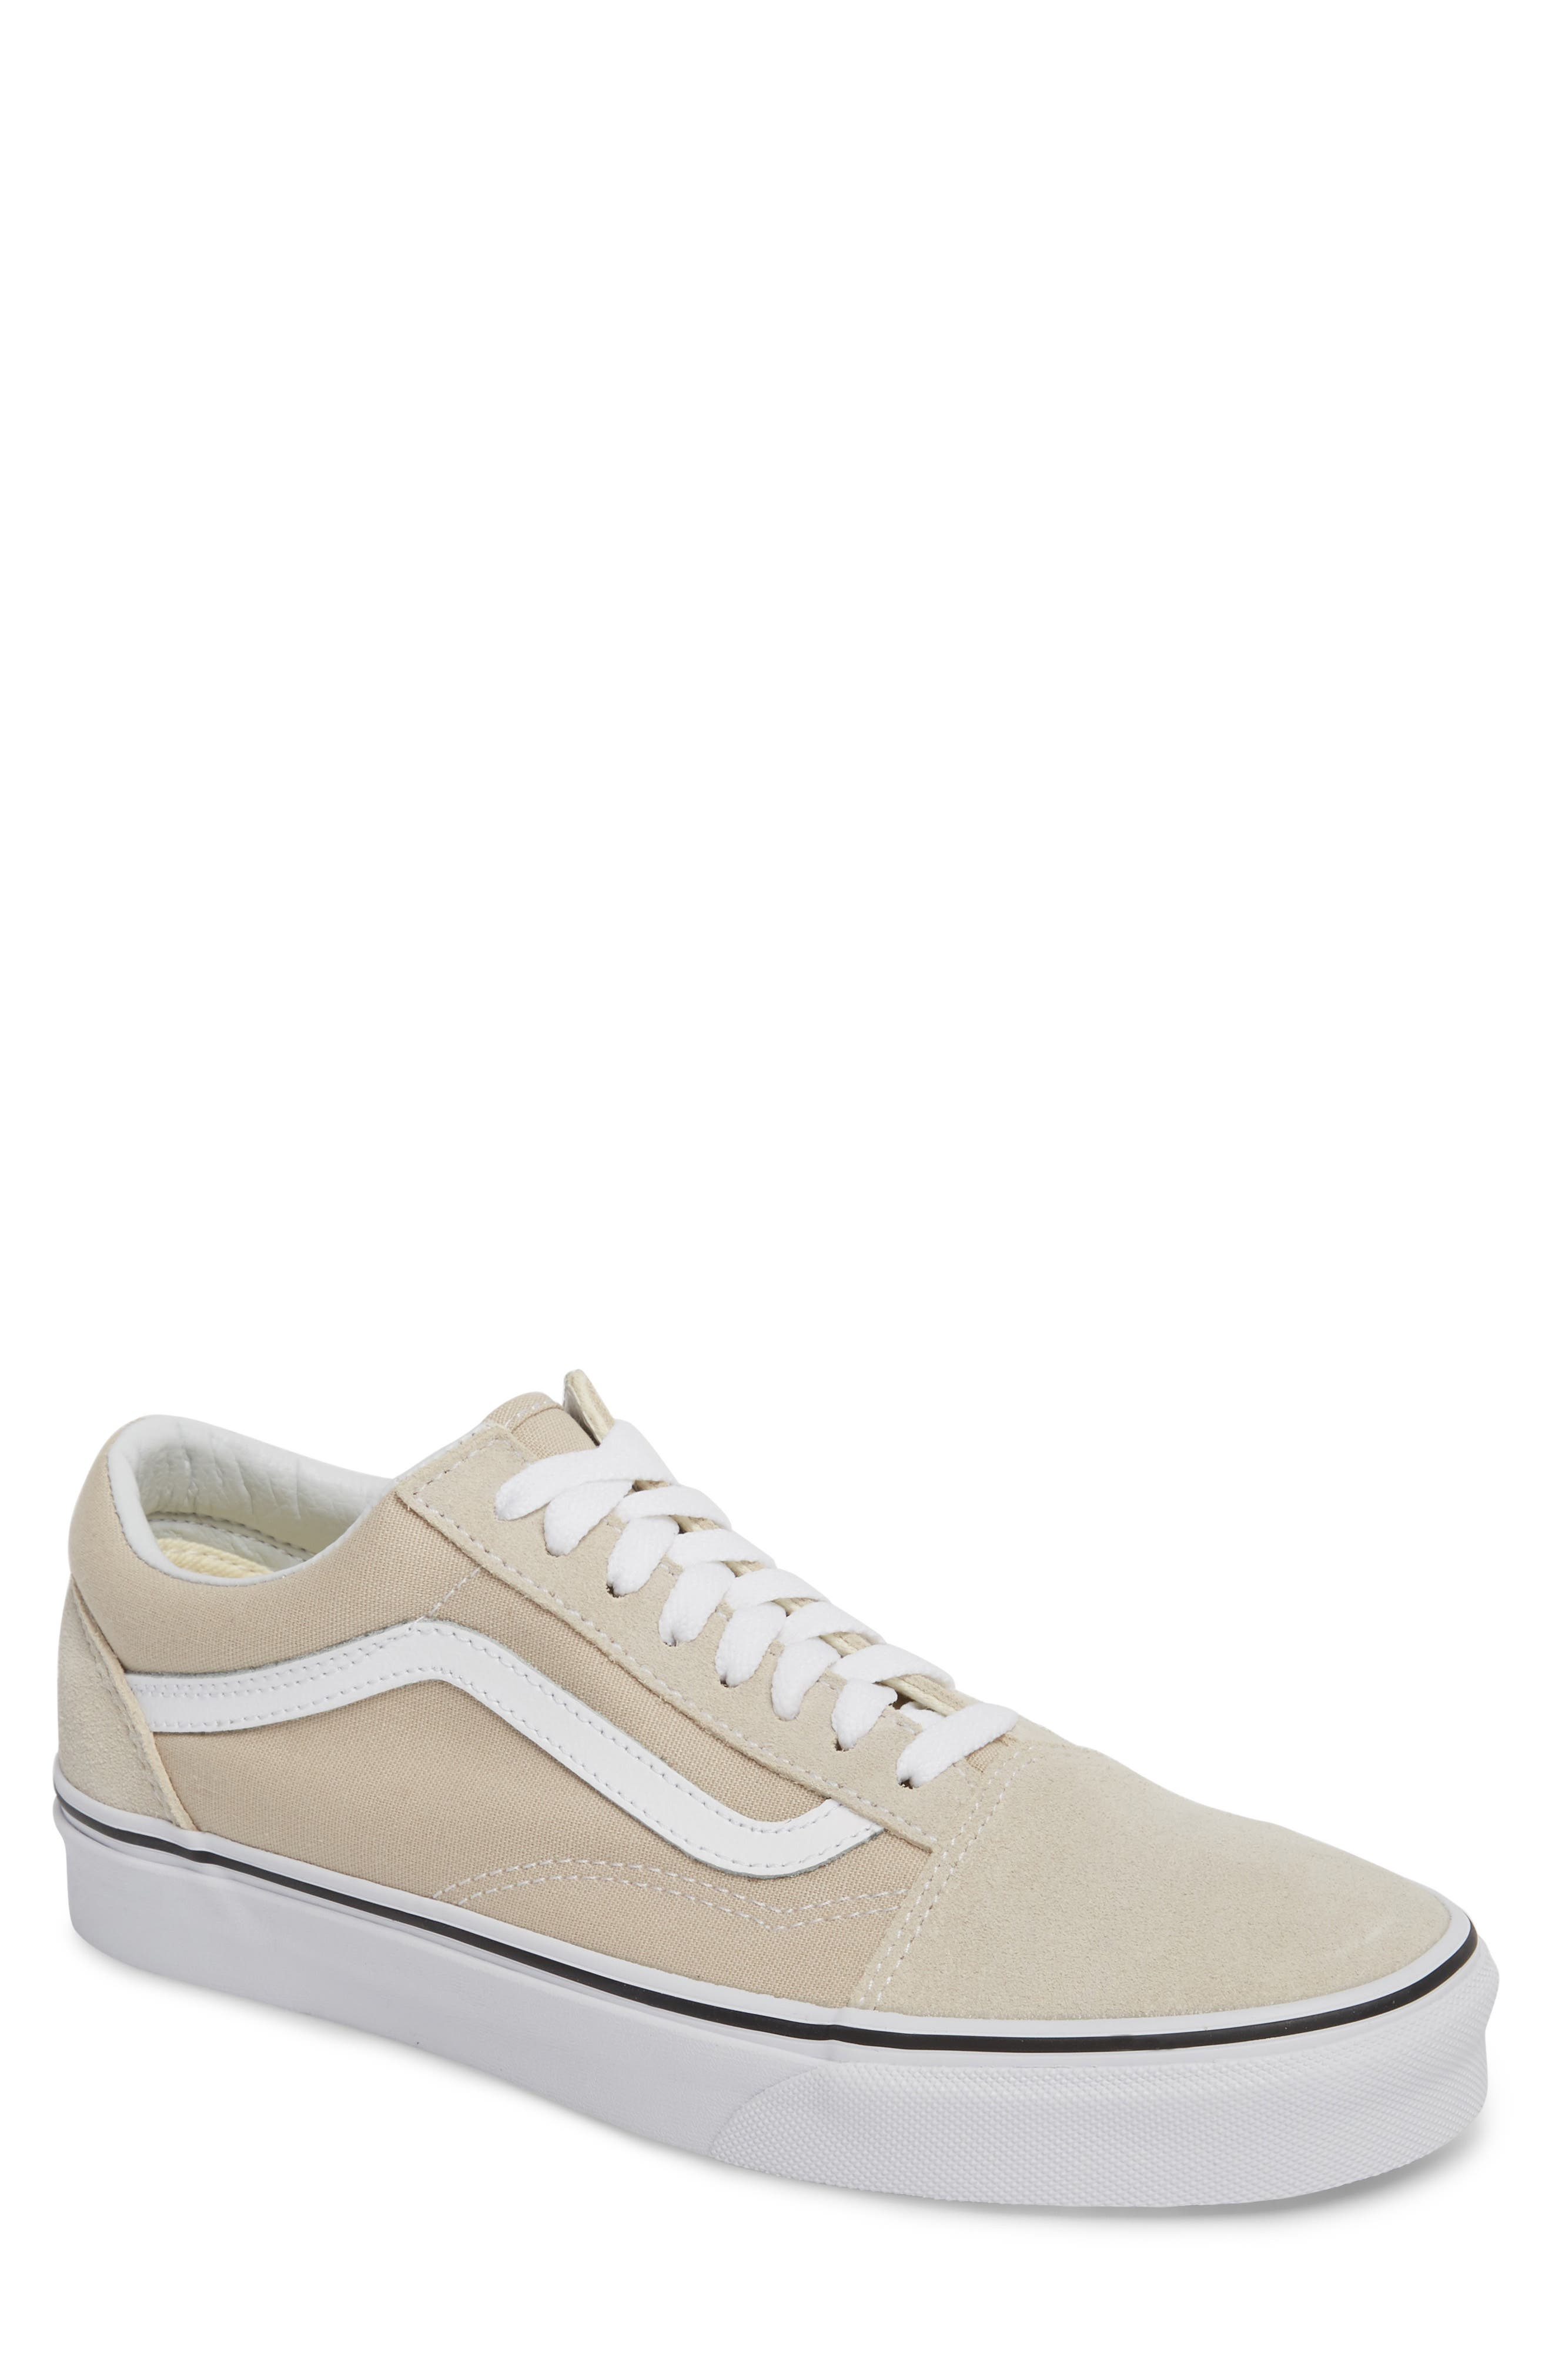 Old Skool Low Top Sneaker,                         Main,                         color, Silver Lining/ White Leather